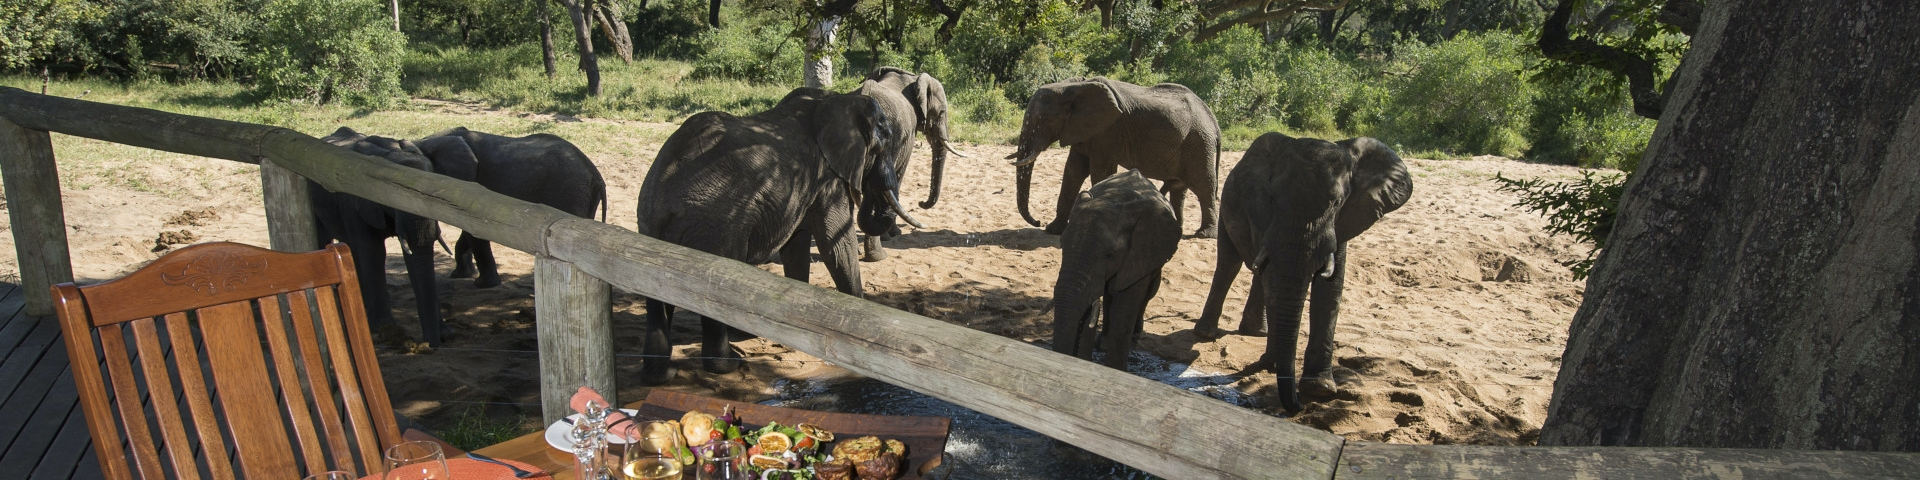 Tintswalo Safari Lodge - Manyeleti Game Reserve - South Africa